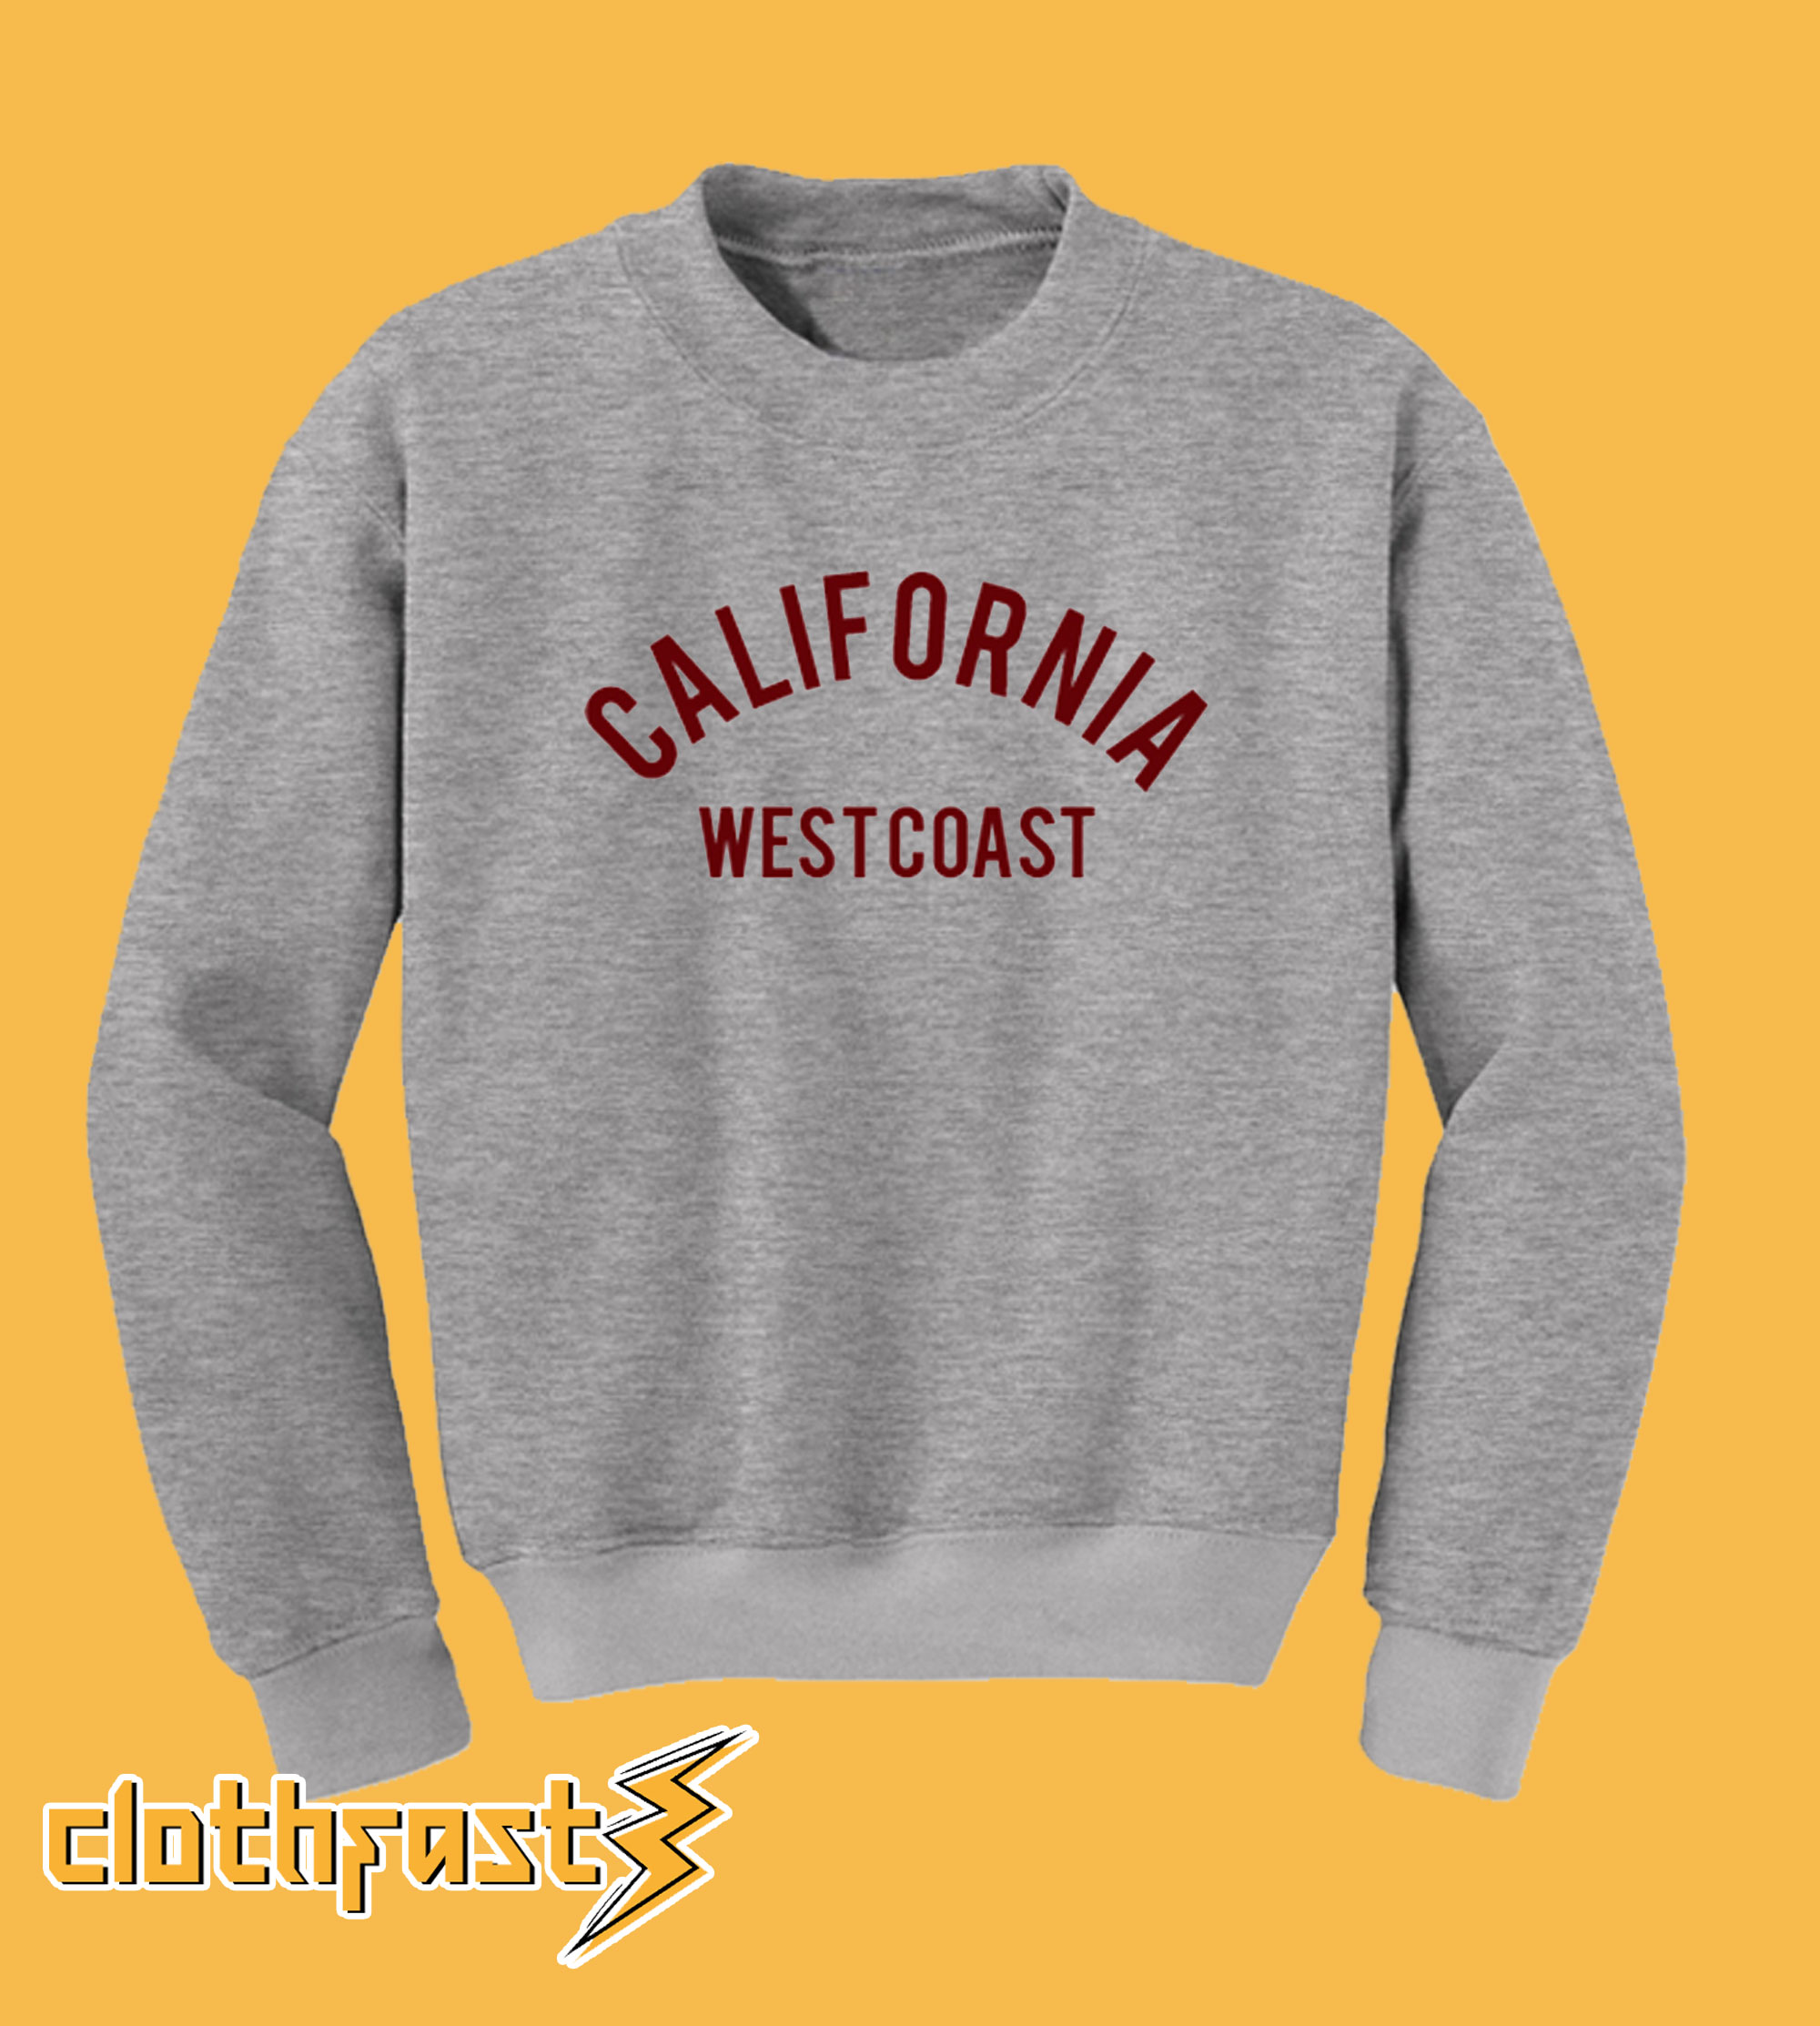 California West Coast Sweatshirt